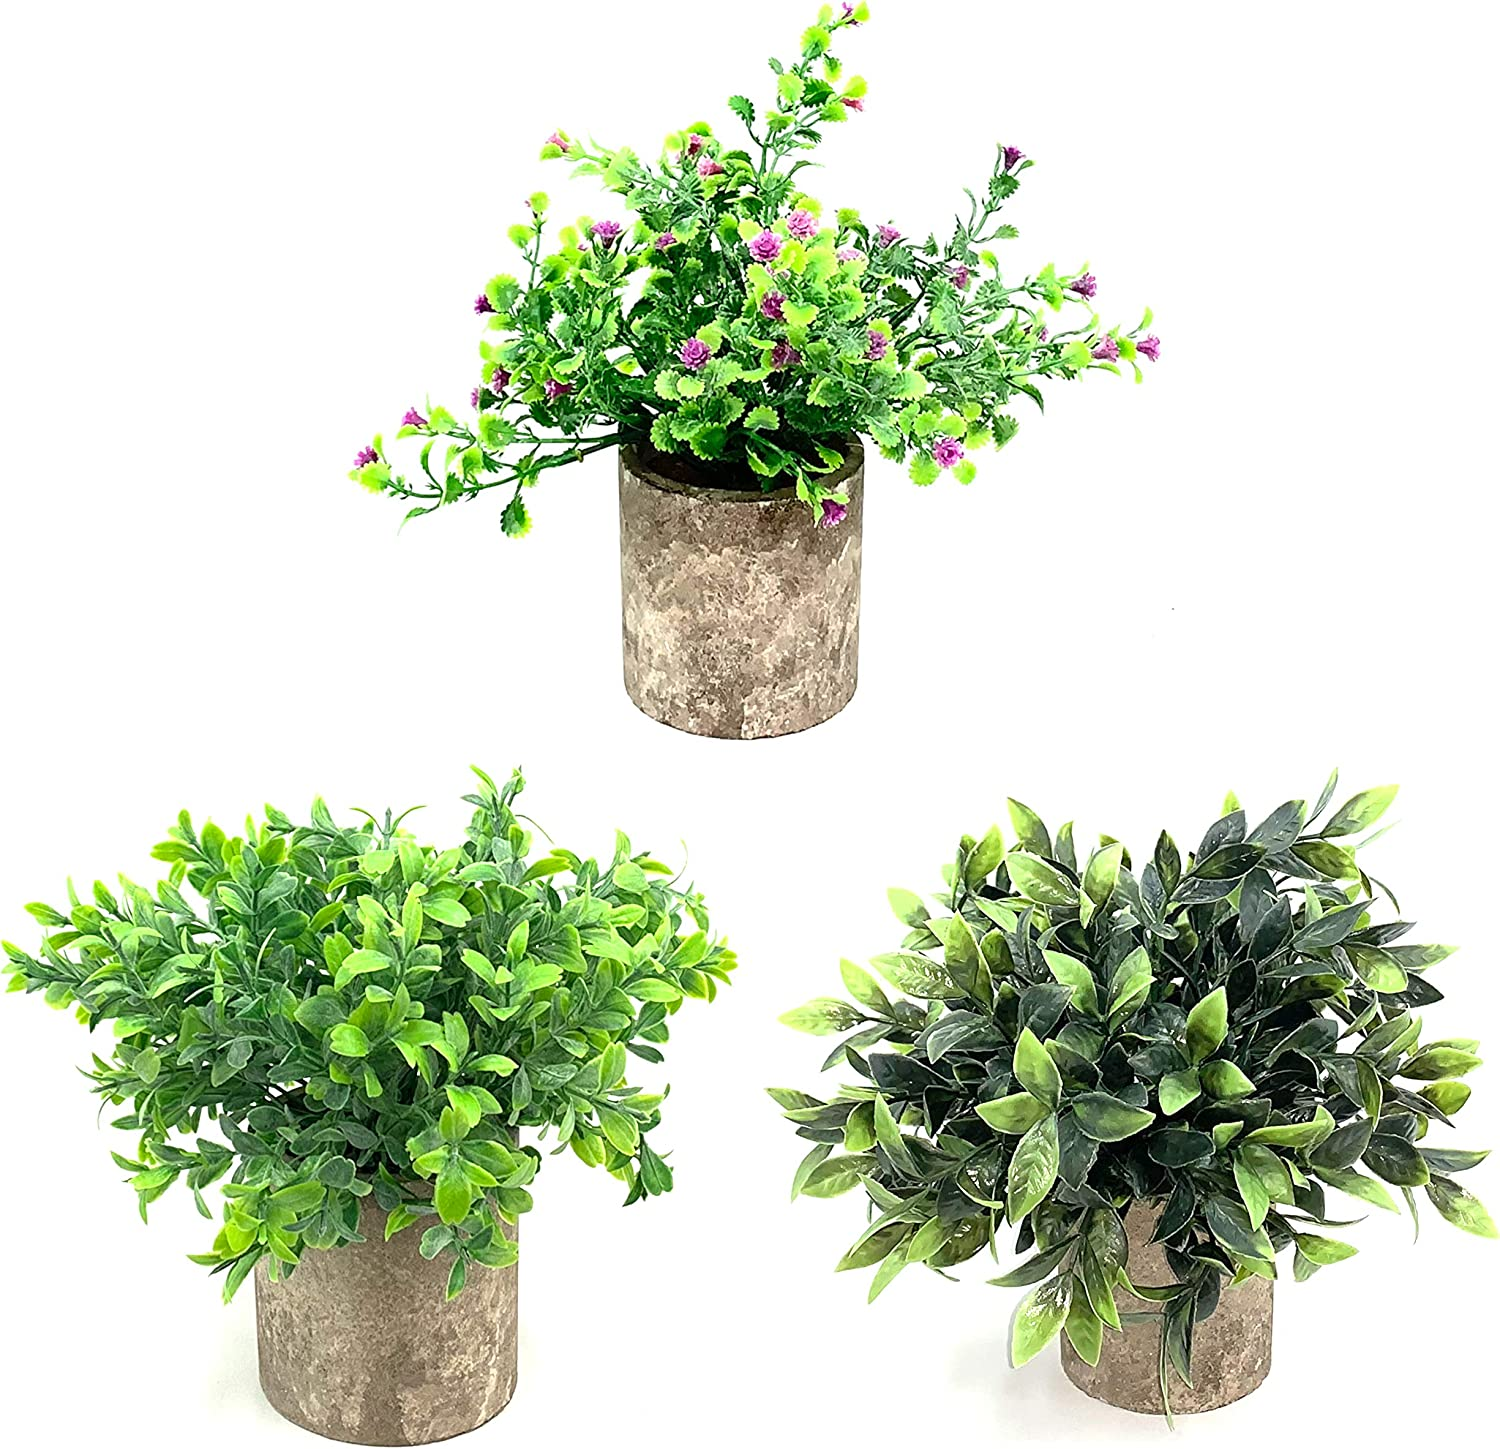 Faux Botany Realistic Mini Artificial Potted Plants, Luxury Home Decorations, Mini Fake Plants, Potted Plants Table Décor, Office Greenery, Bathroom Knick Knack's, Original - (Set of 3)